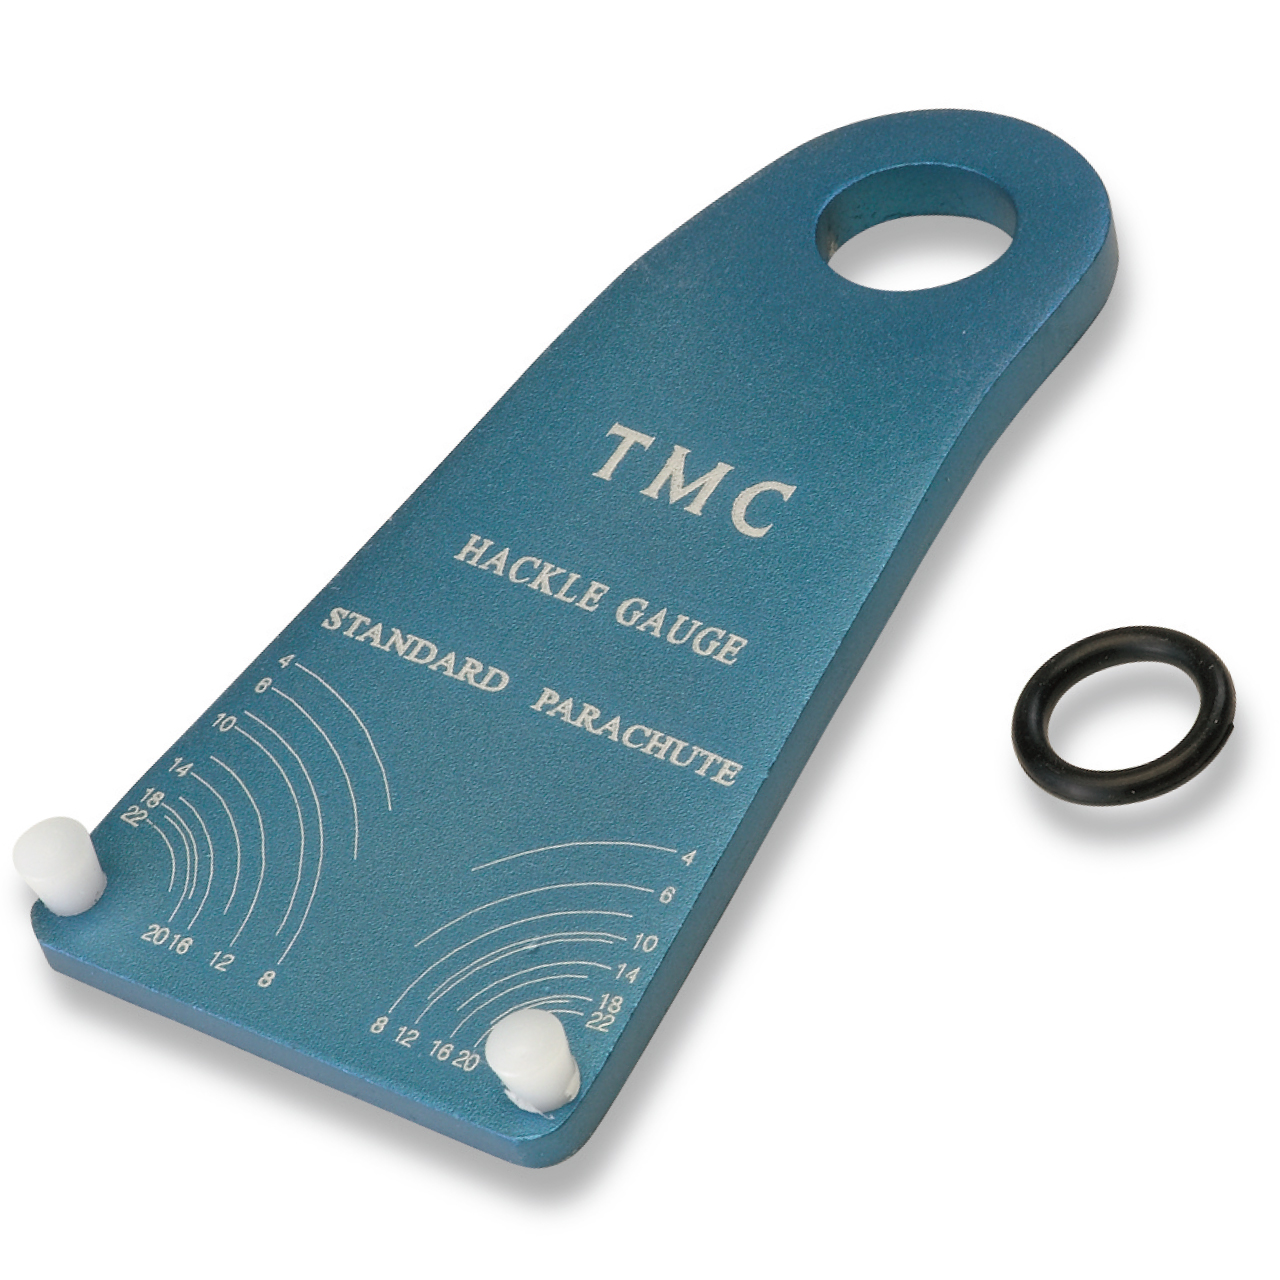 TMC Hackle Gauge